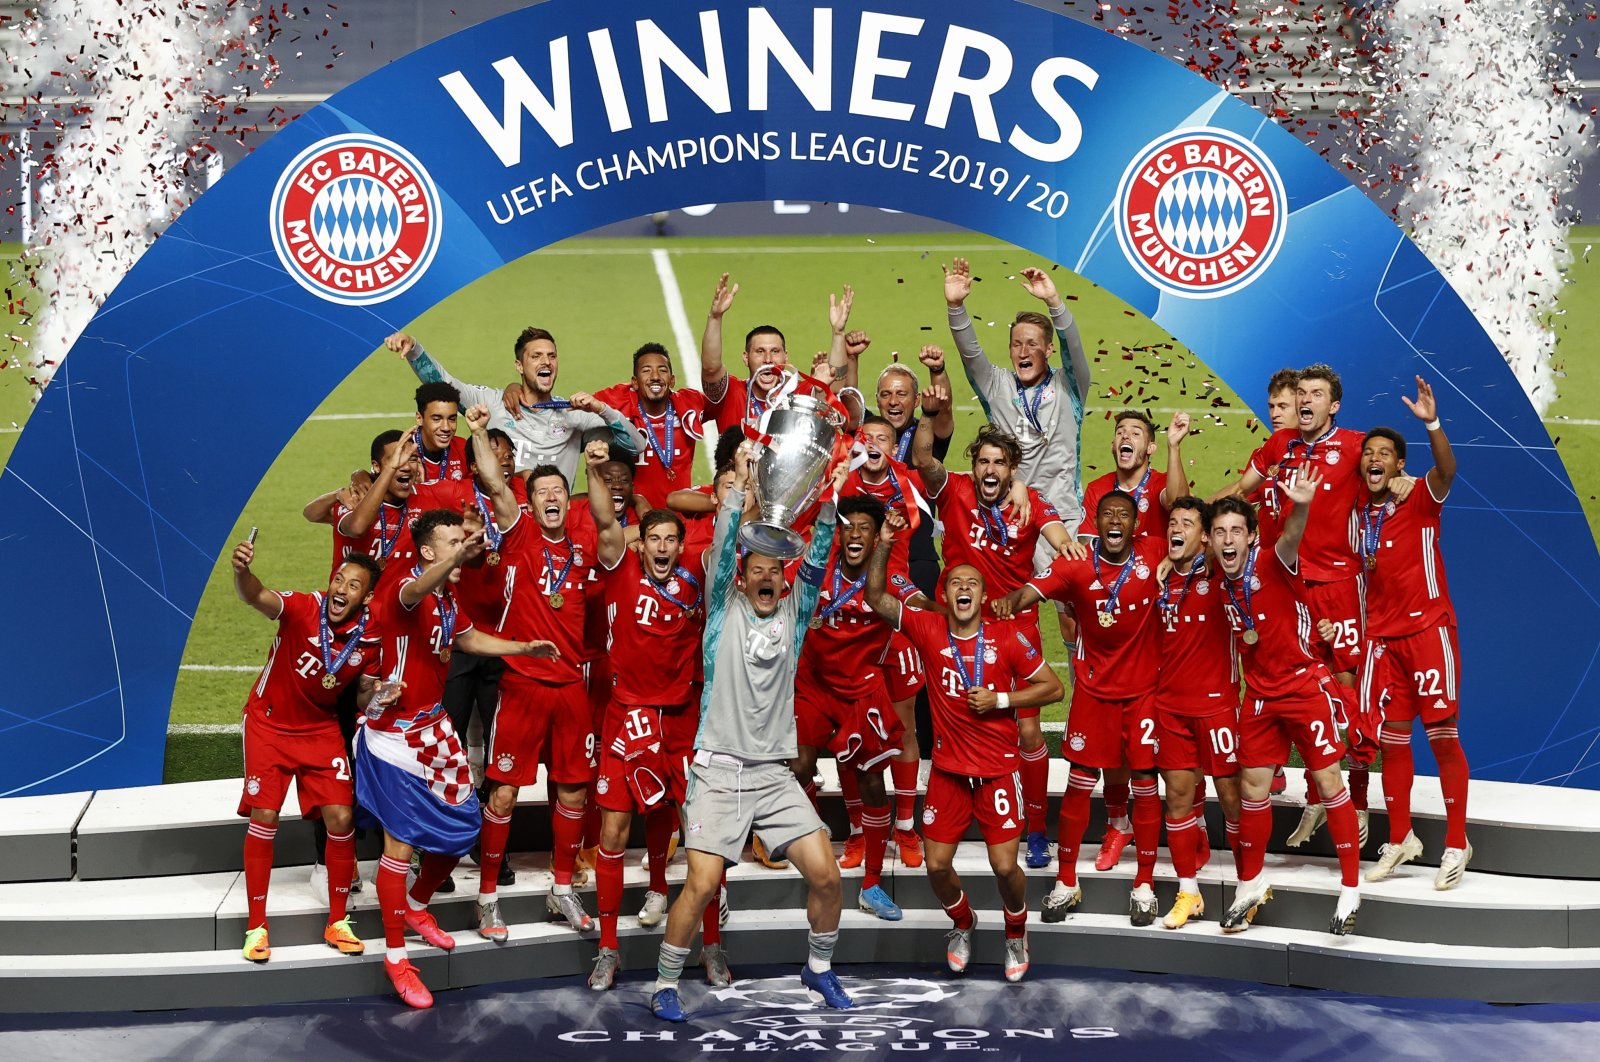 Bayern Munich's Manuel Neuer lifts the trophy with his teammates after winning the Champions League final match against Paris Saint-Germain in Lisbon, Portugal, Aug. 23, 2020. (AP Photo)